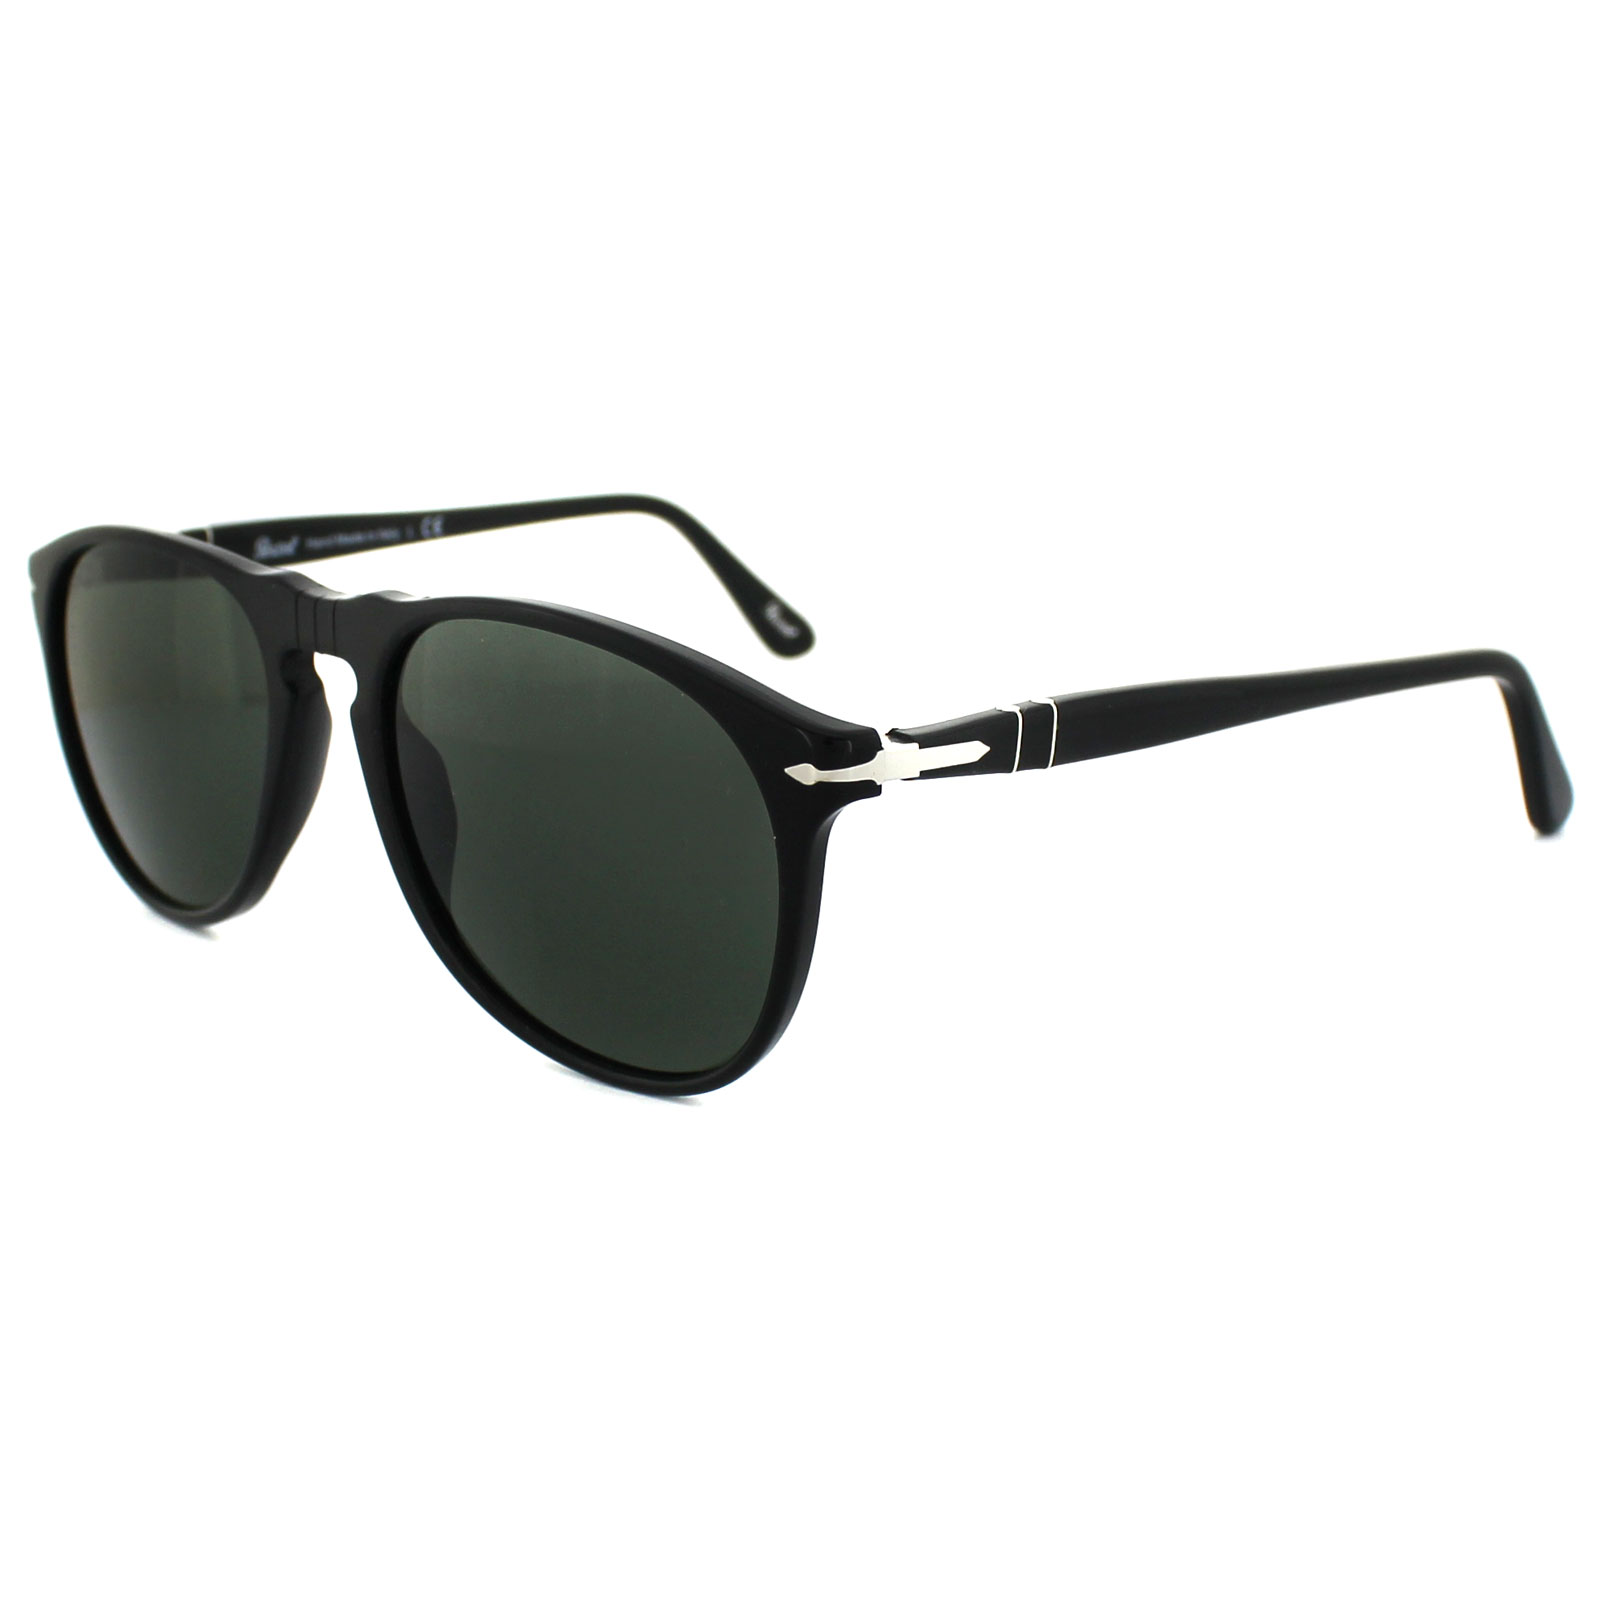 c96fc14cb8b4 Cheap Persol 9649 Sunglasses - Discounted Sunglasses